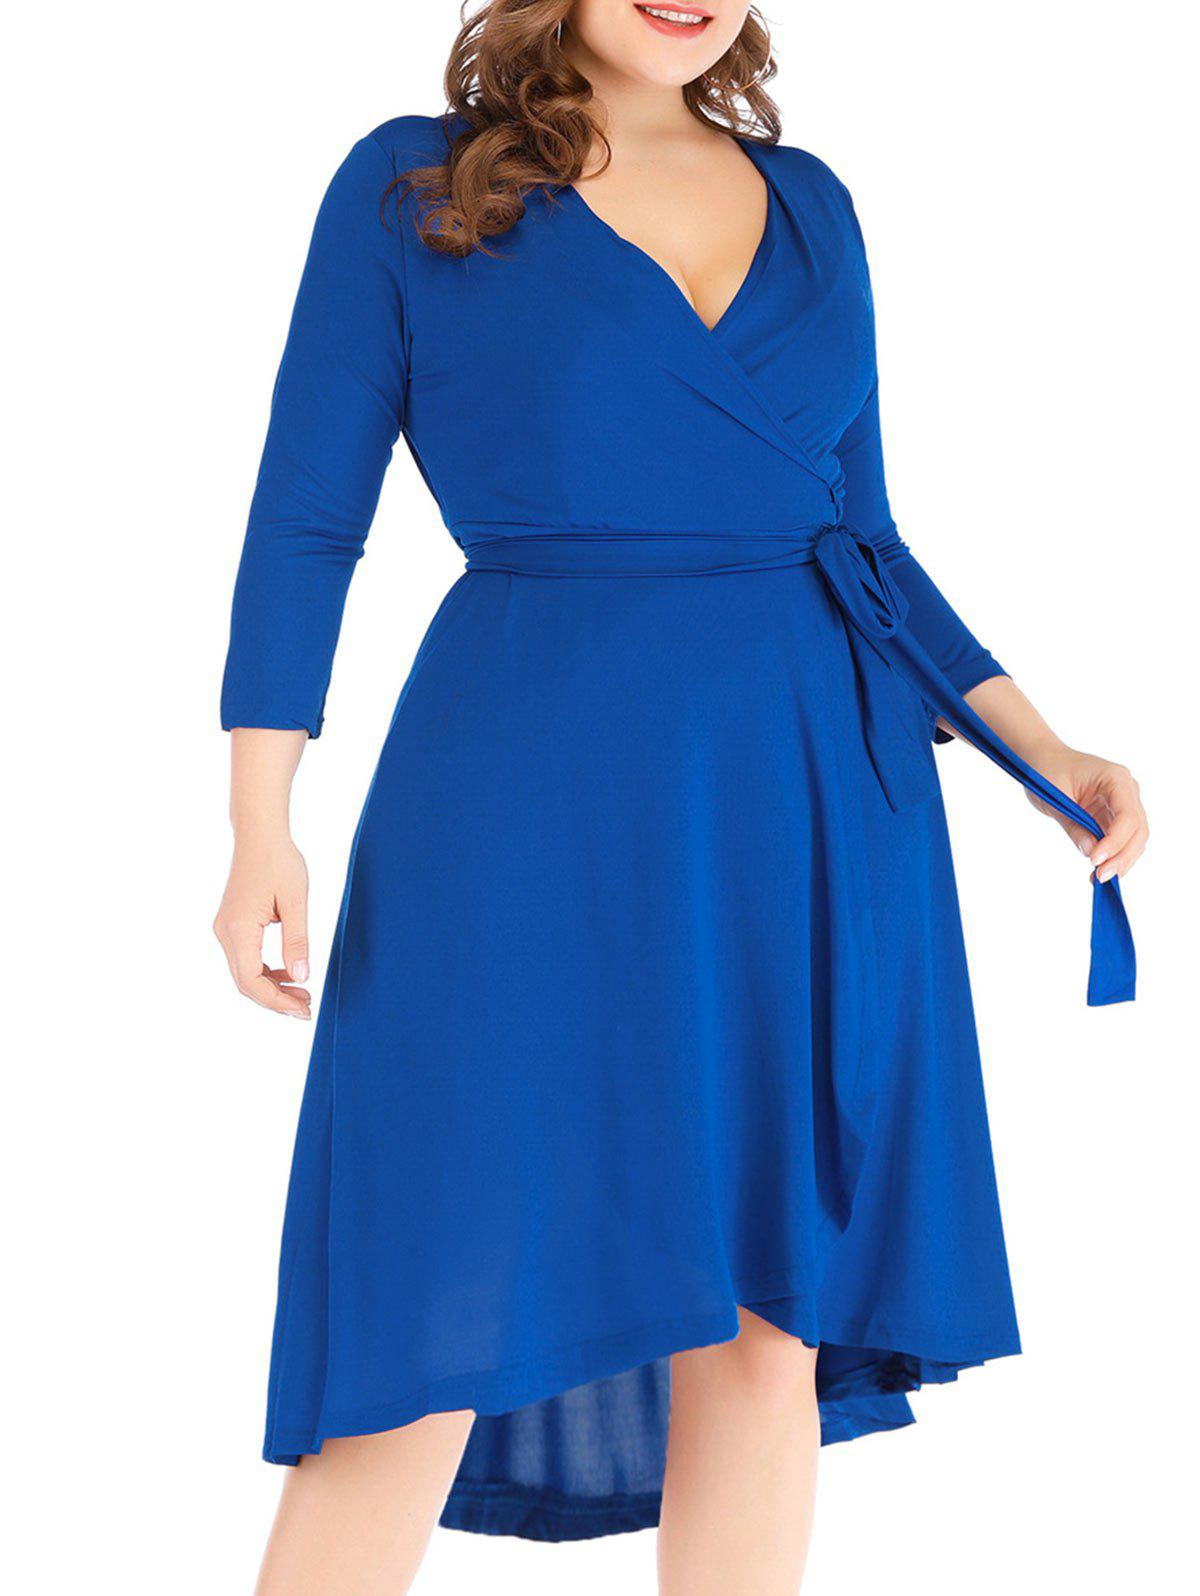 New Solid High Low Plus Size Wrap Dress